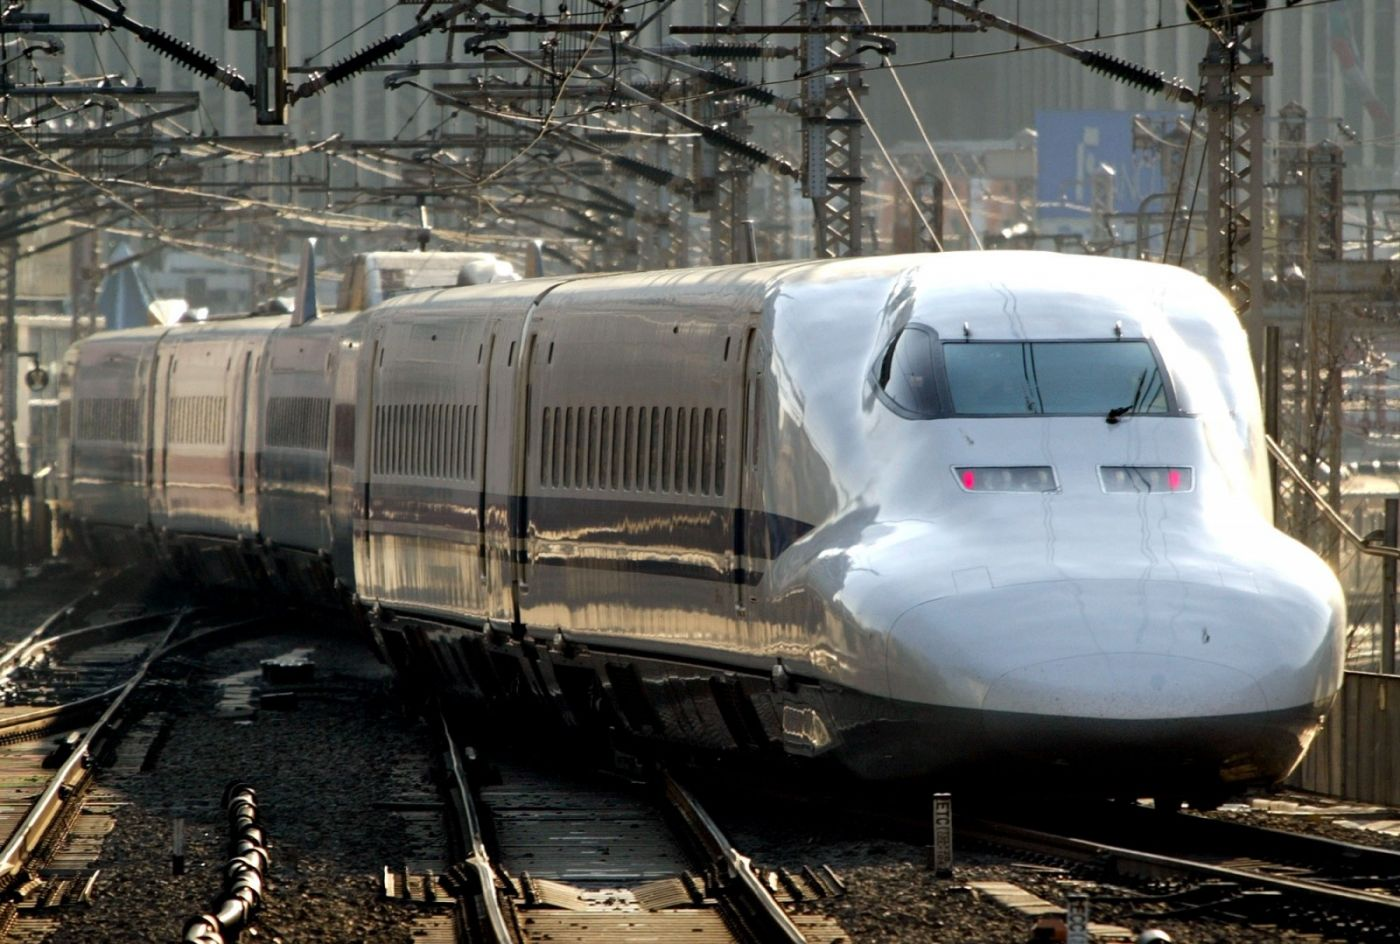 Train car side view login to view prices realised - Train Car Side View Login To View Prices Realised 2